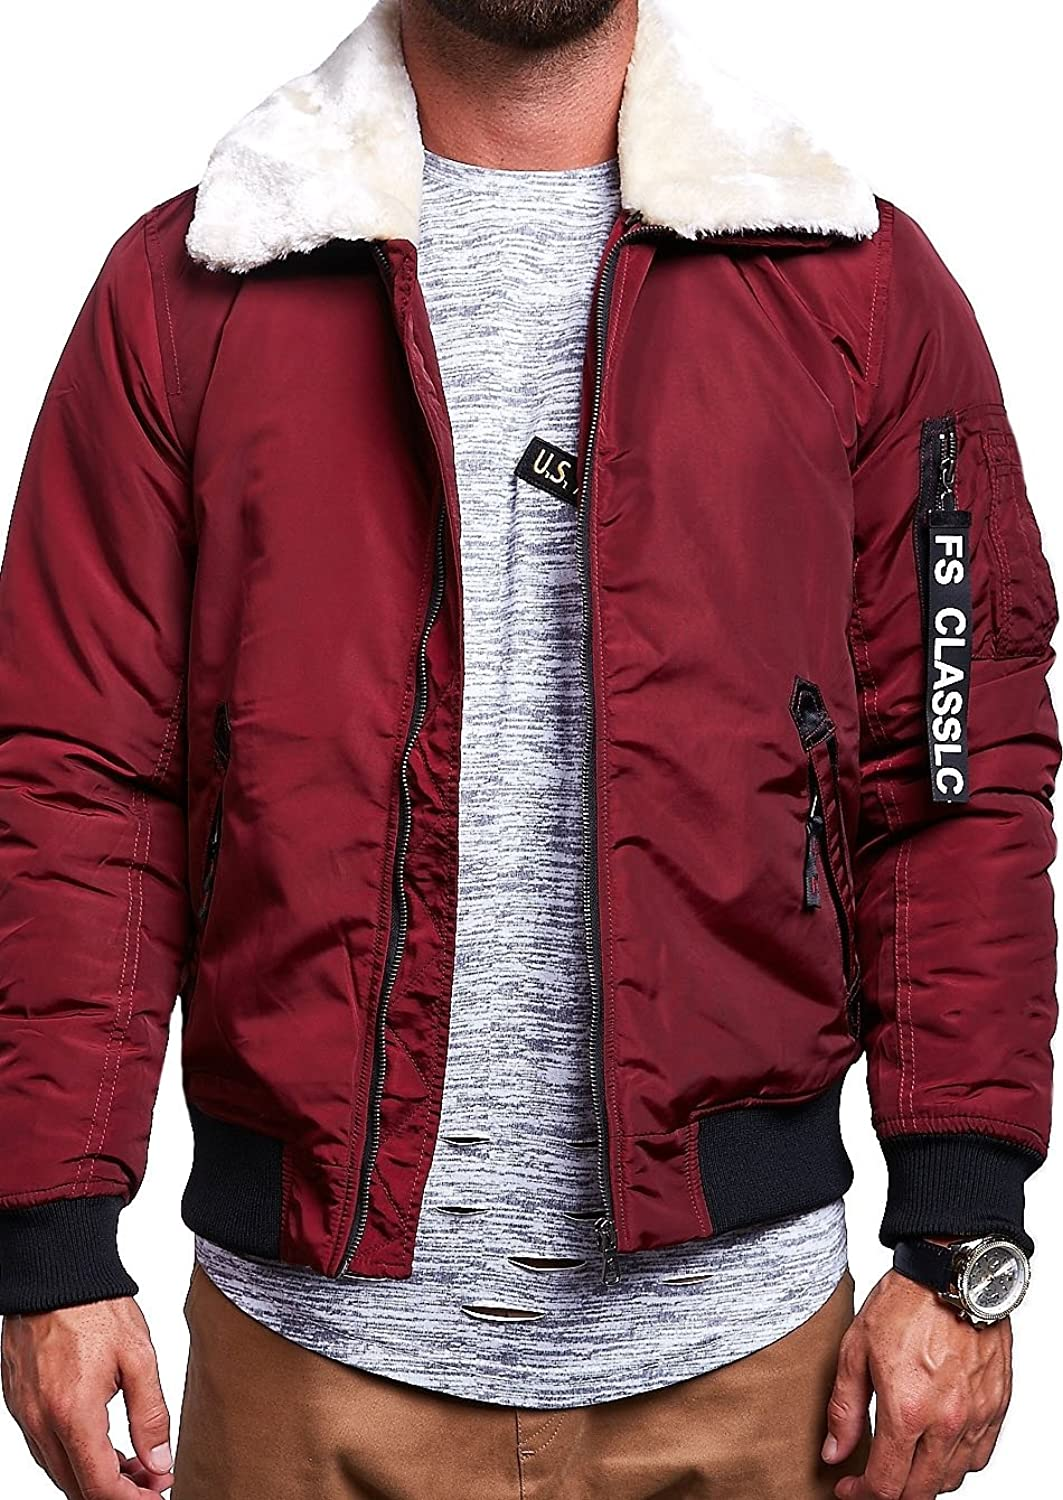 MT Styles Men's Bomber Jacket M-1009